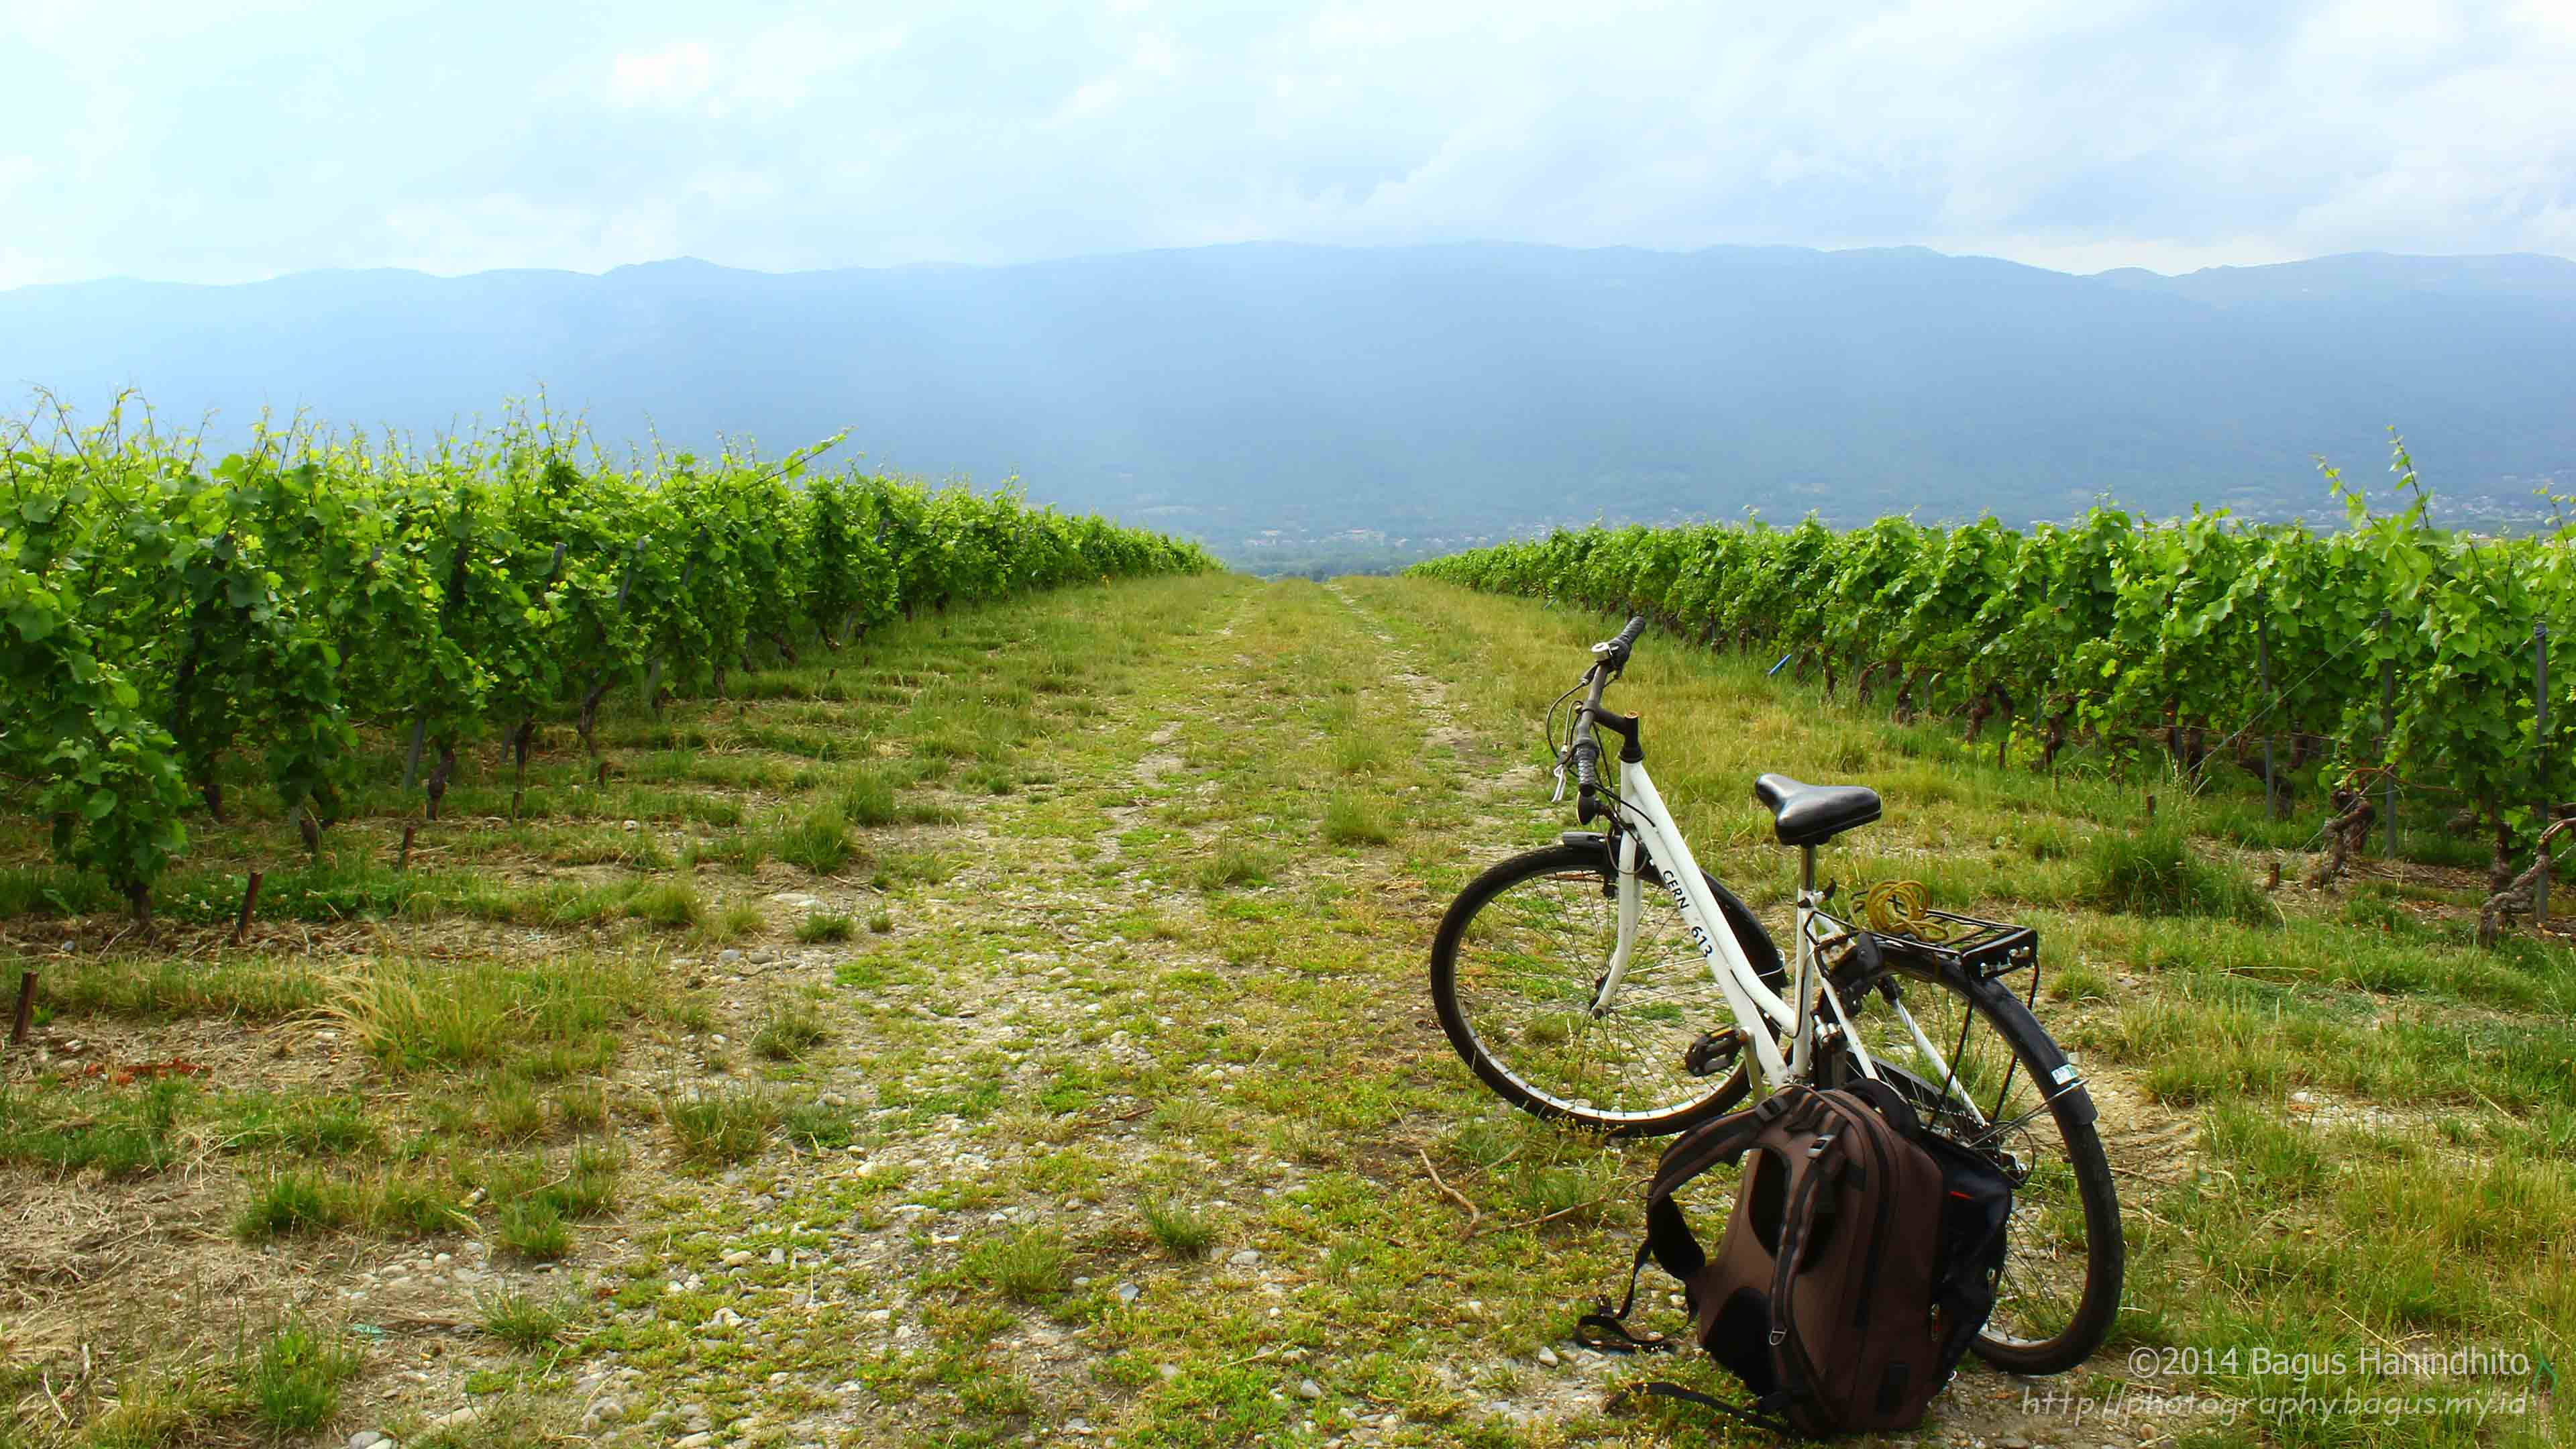 Exploring Wine Garden Nearby using CERN Bicycle!